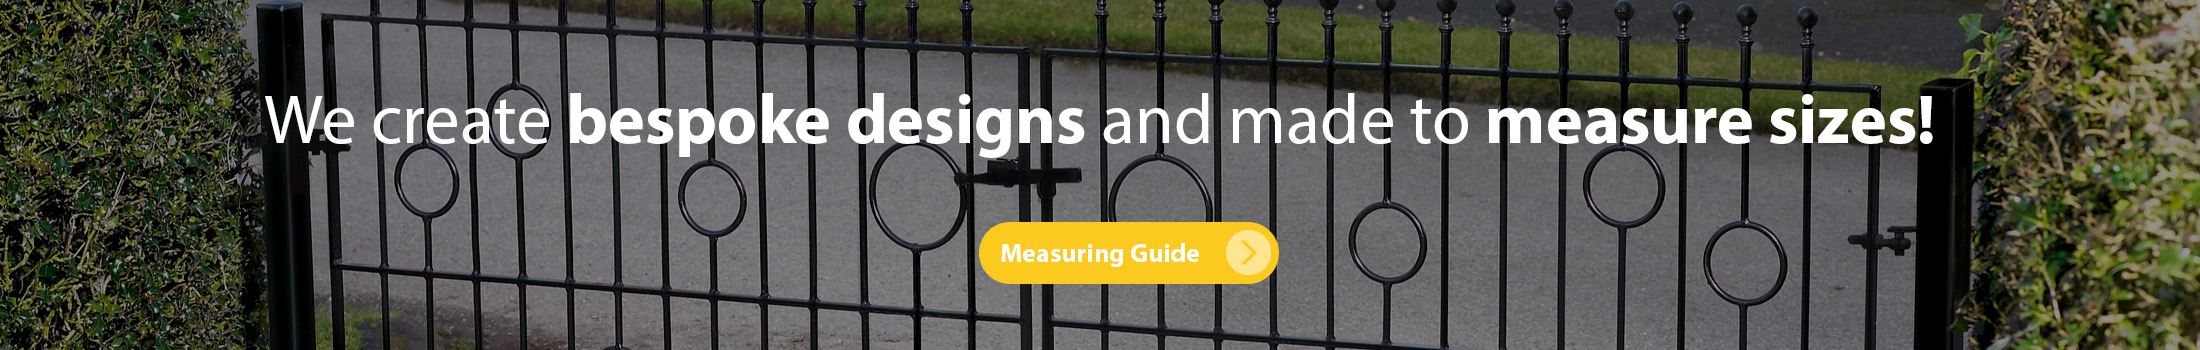 View our measuring guide if you need help with sizes